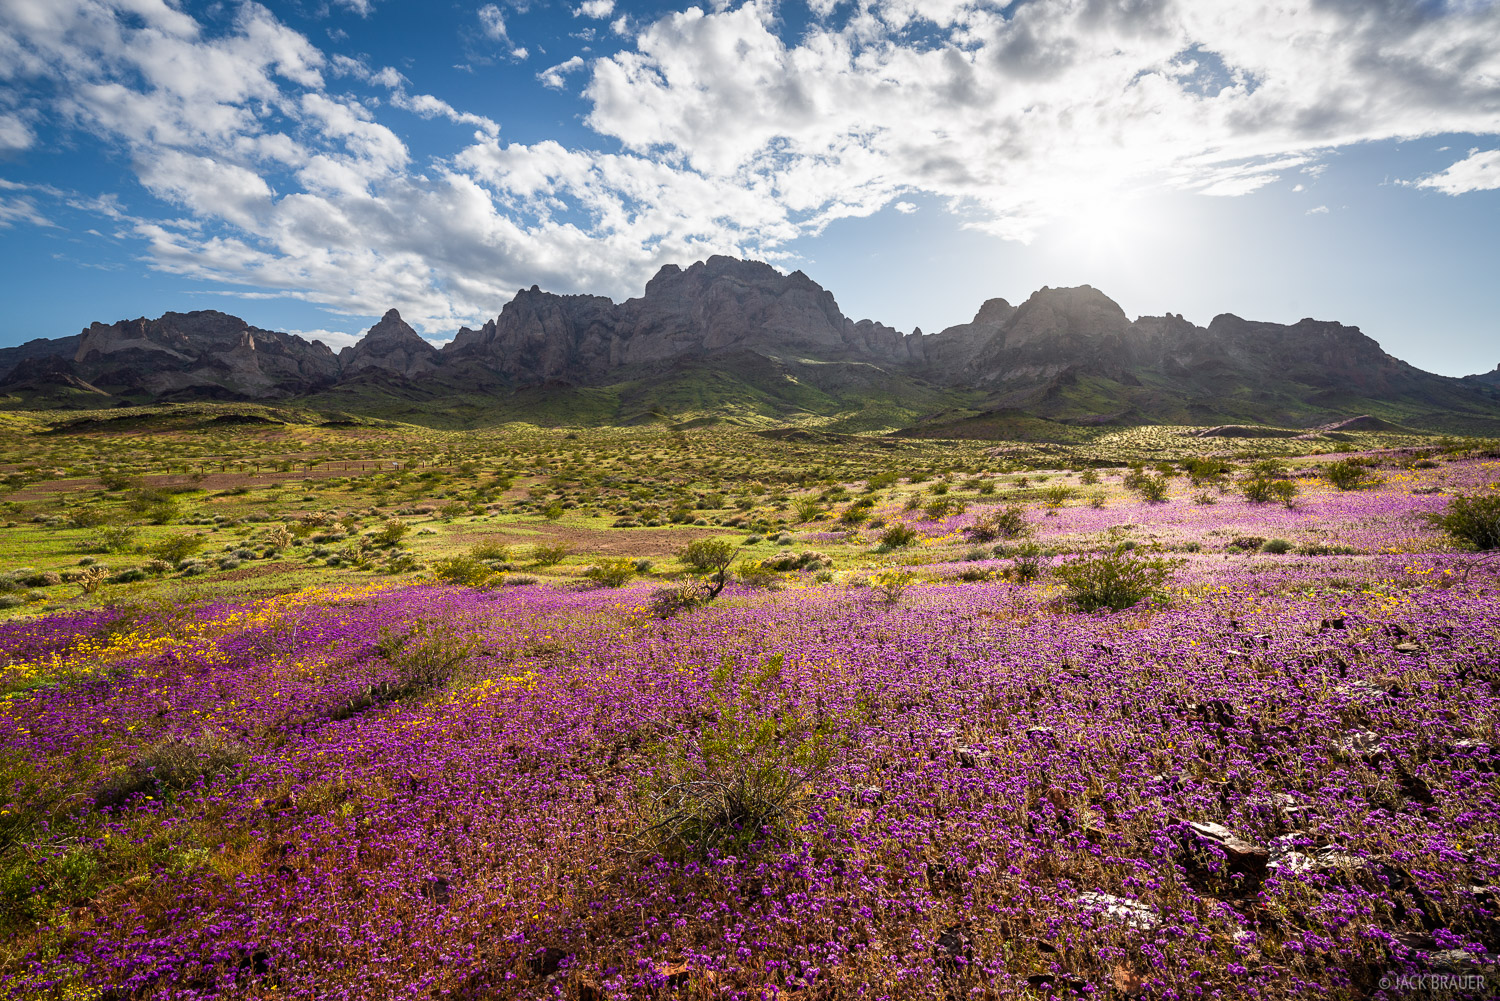 Wildflower superbloom in the Turtle Mountains of California after an exceptionally rainy winter in the Mojave Desert.